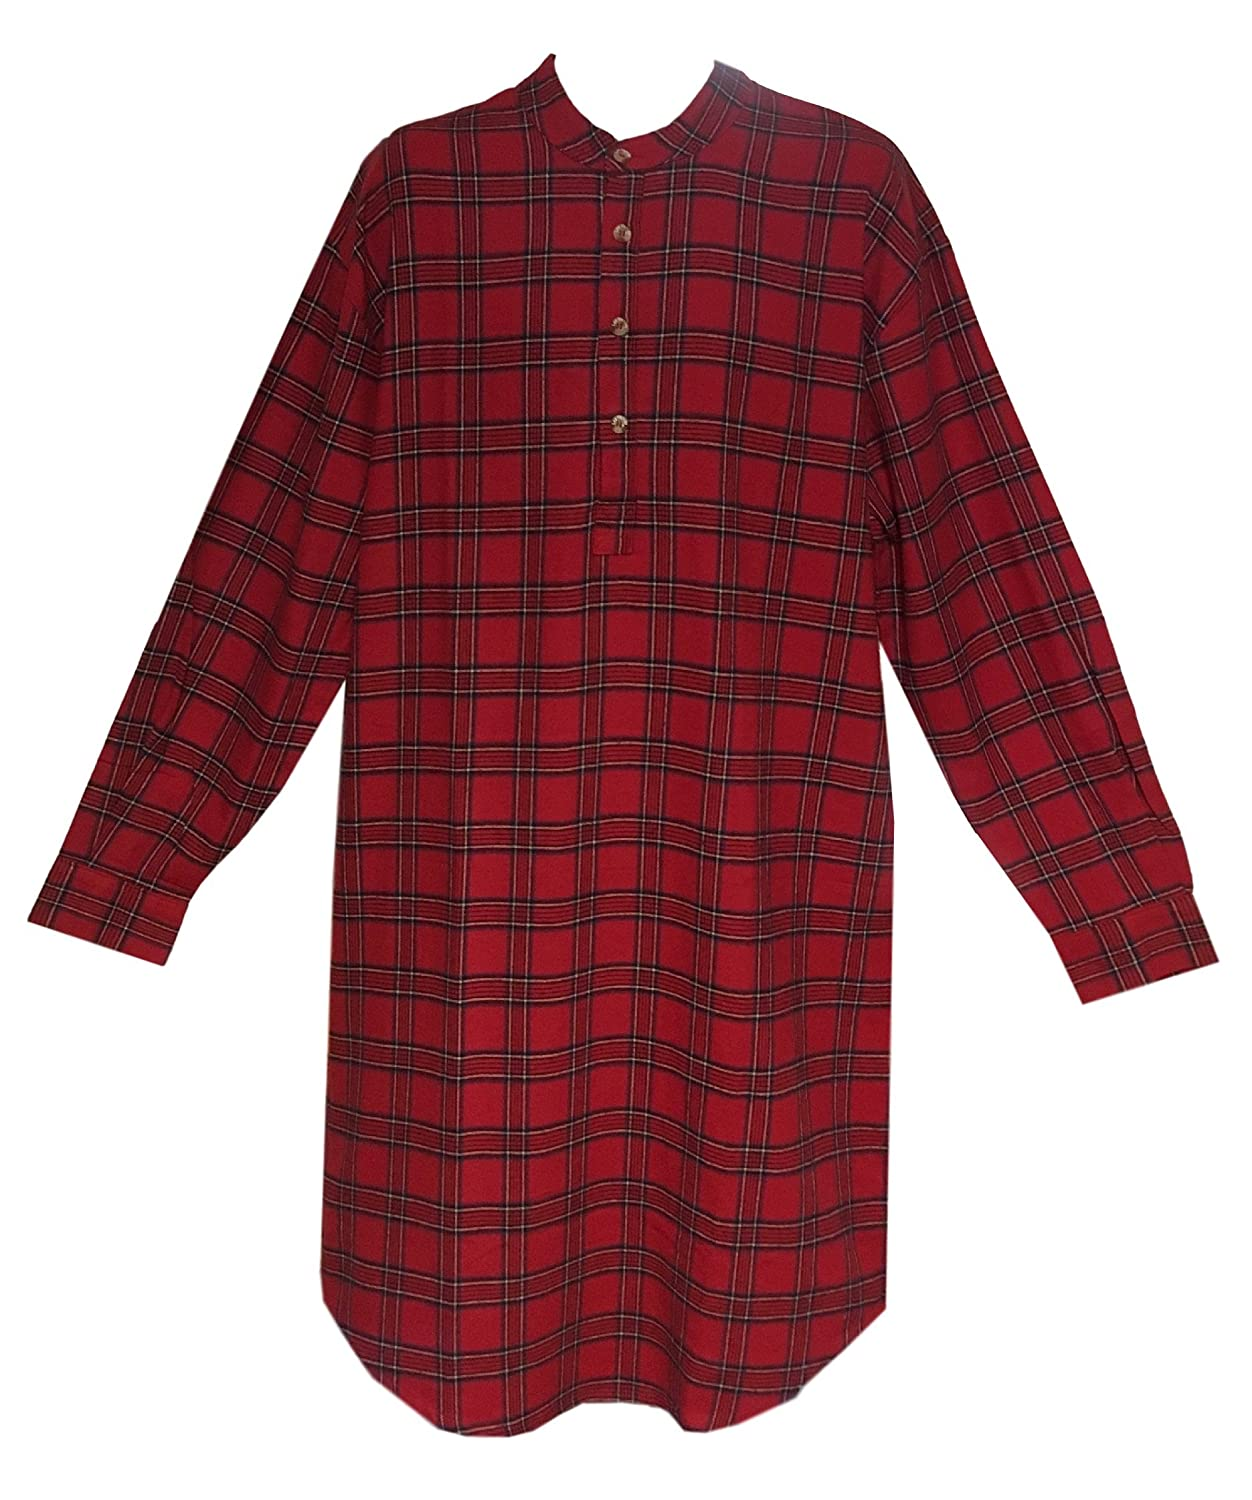 Lee Valley Men's Flannel Nightshirt (Small, Red Tartan) Ireland